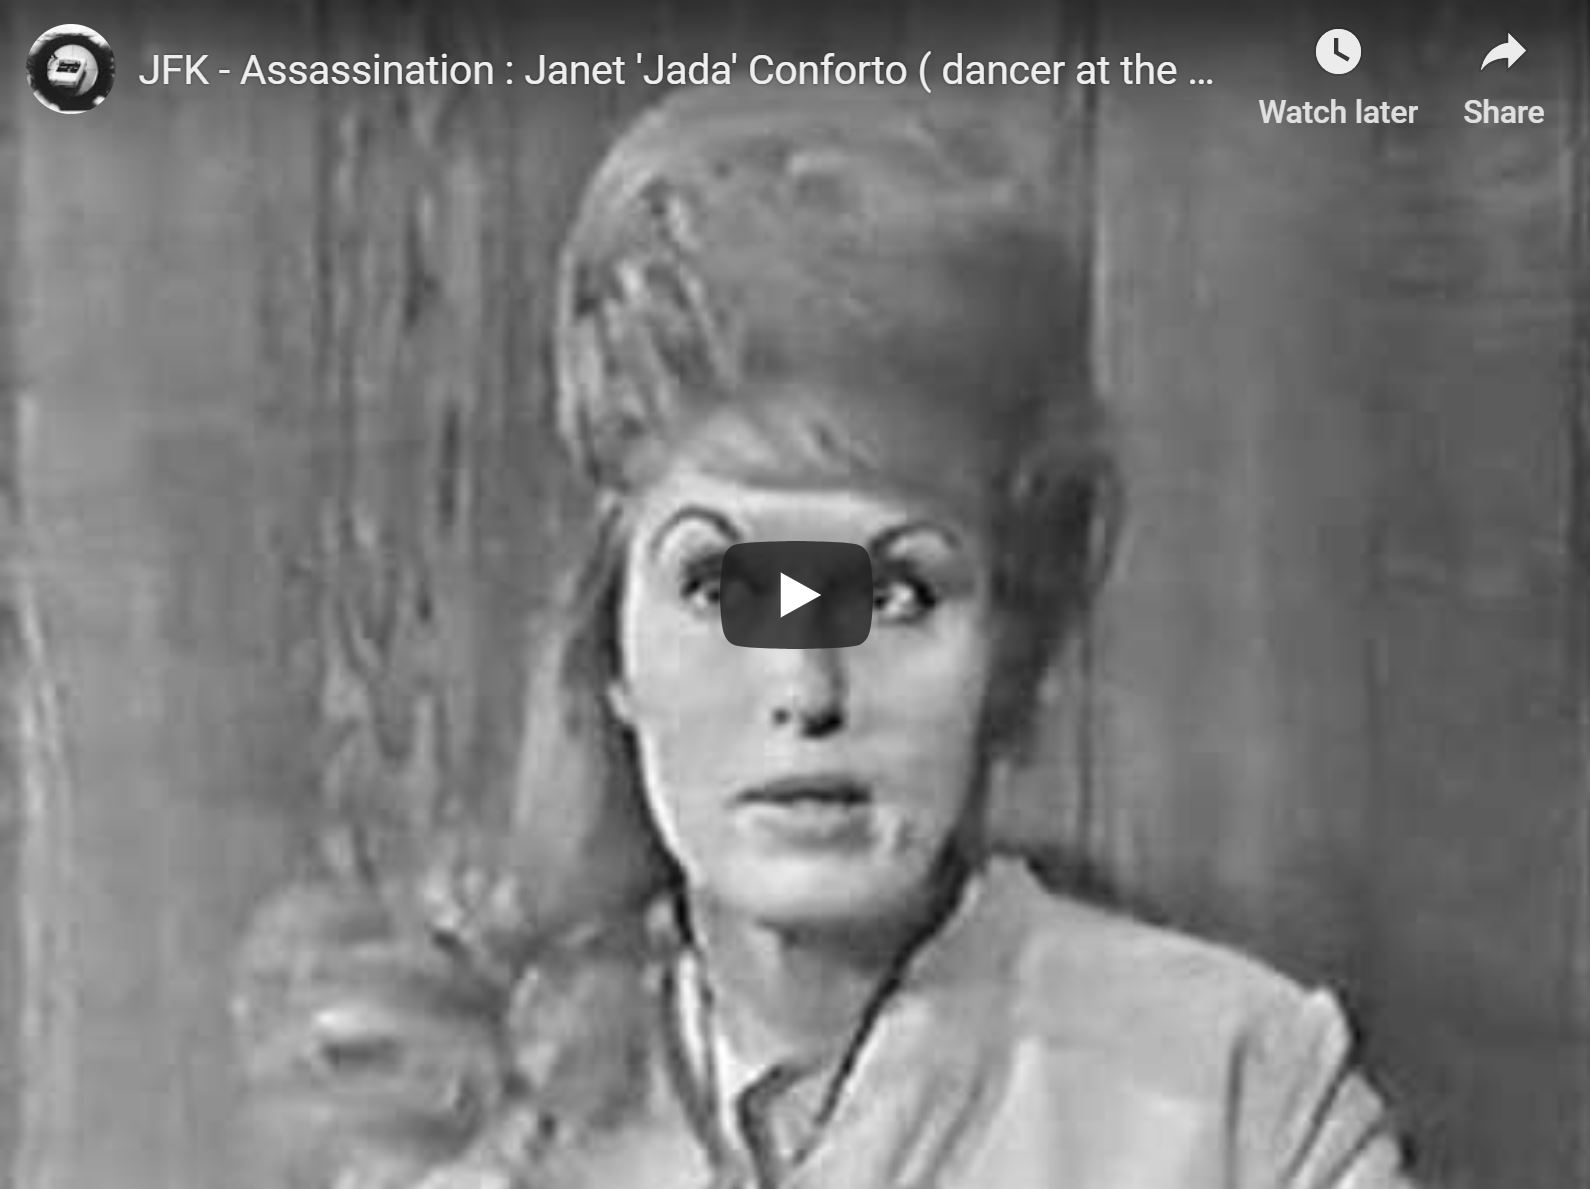 """Here he is interviewing Janet Jada Conforto, a dancer with a spotty memory, who worked at Jack Ruby's Carousel Club. My father exudes old-fashioned newsman comportment and speech; the swivel chairs are interesting. I love his sign off: """"The reasons for [the assassination], those are hard to pin down, as the portrait of Jack Ruby emerges, piece by piece."""""""